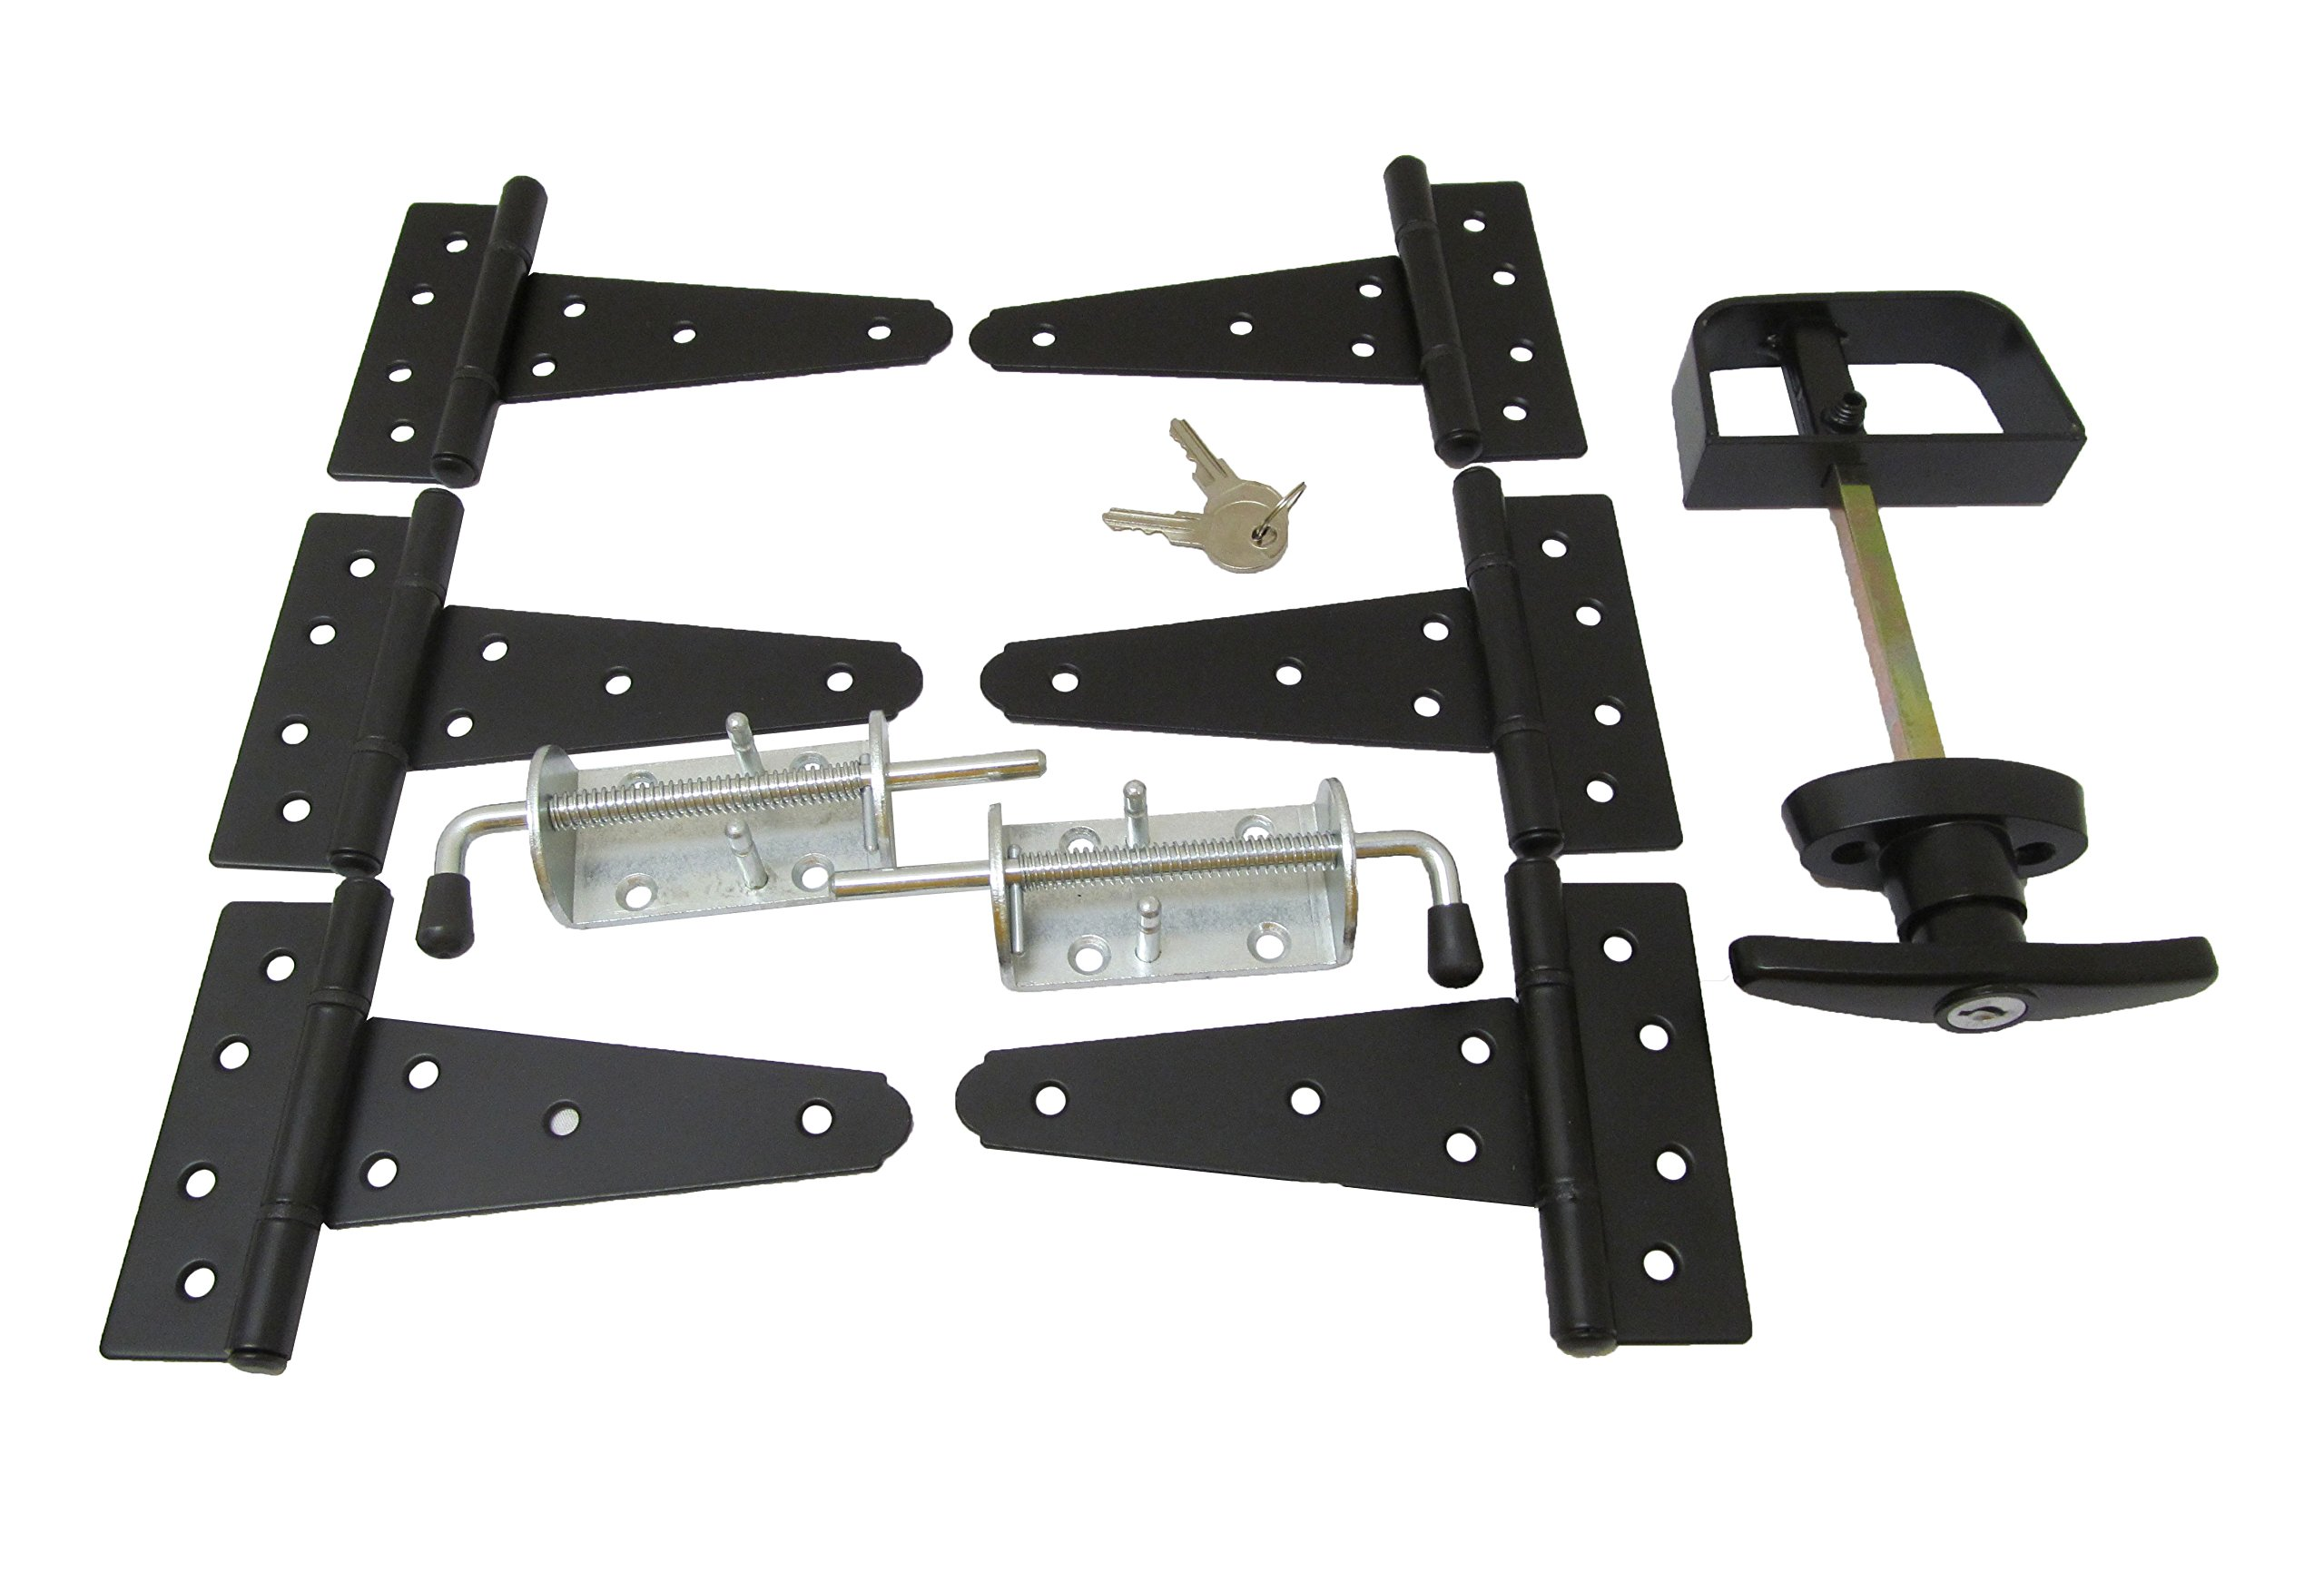 Shed Door Hardware Kit #1, T Hinges 5'', T-handle, NEW Heavy Duty Barrel Bolts